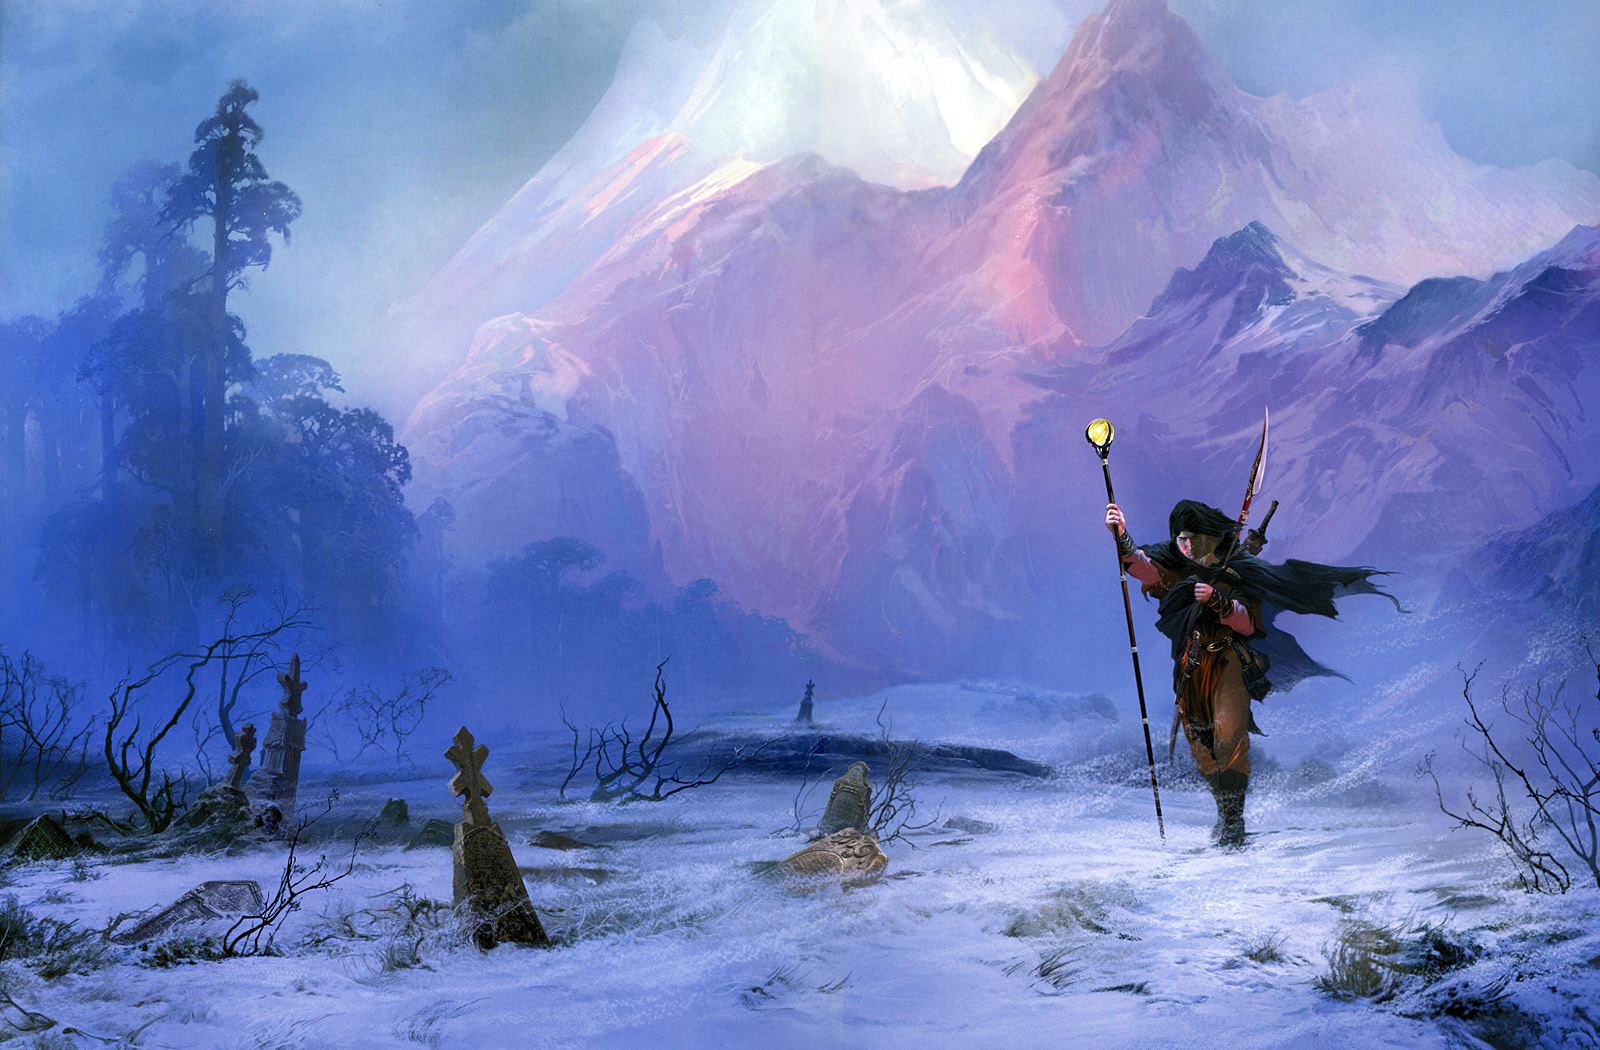 Iphone 7 Wallpaper Pinterest The Mage S Loneliness I Wallpaper And Background Image